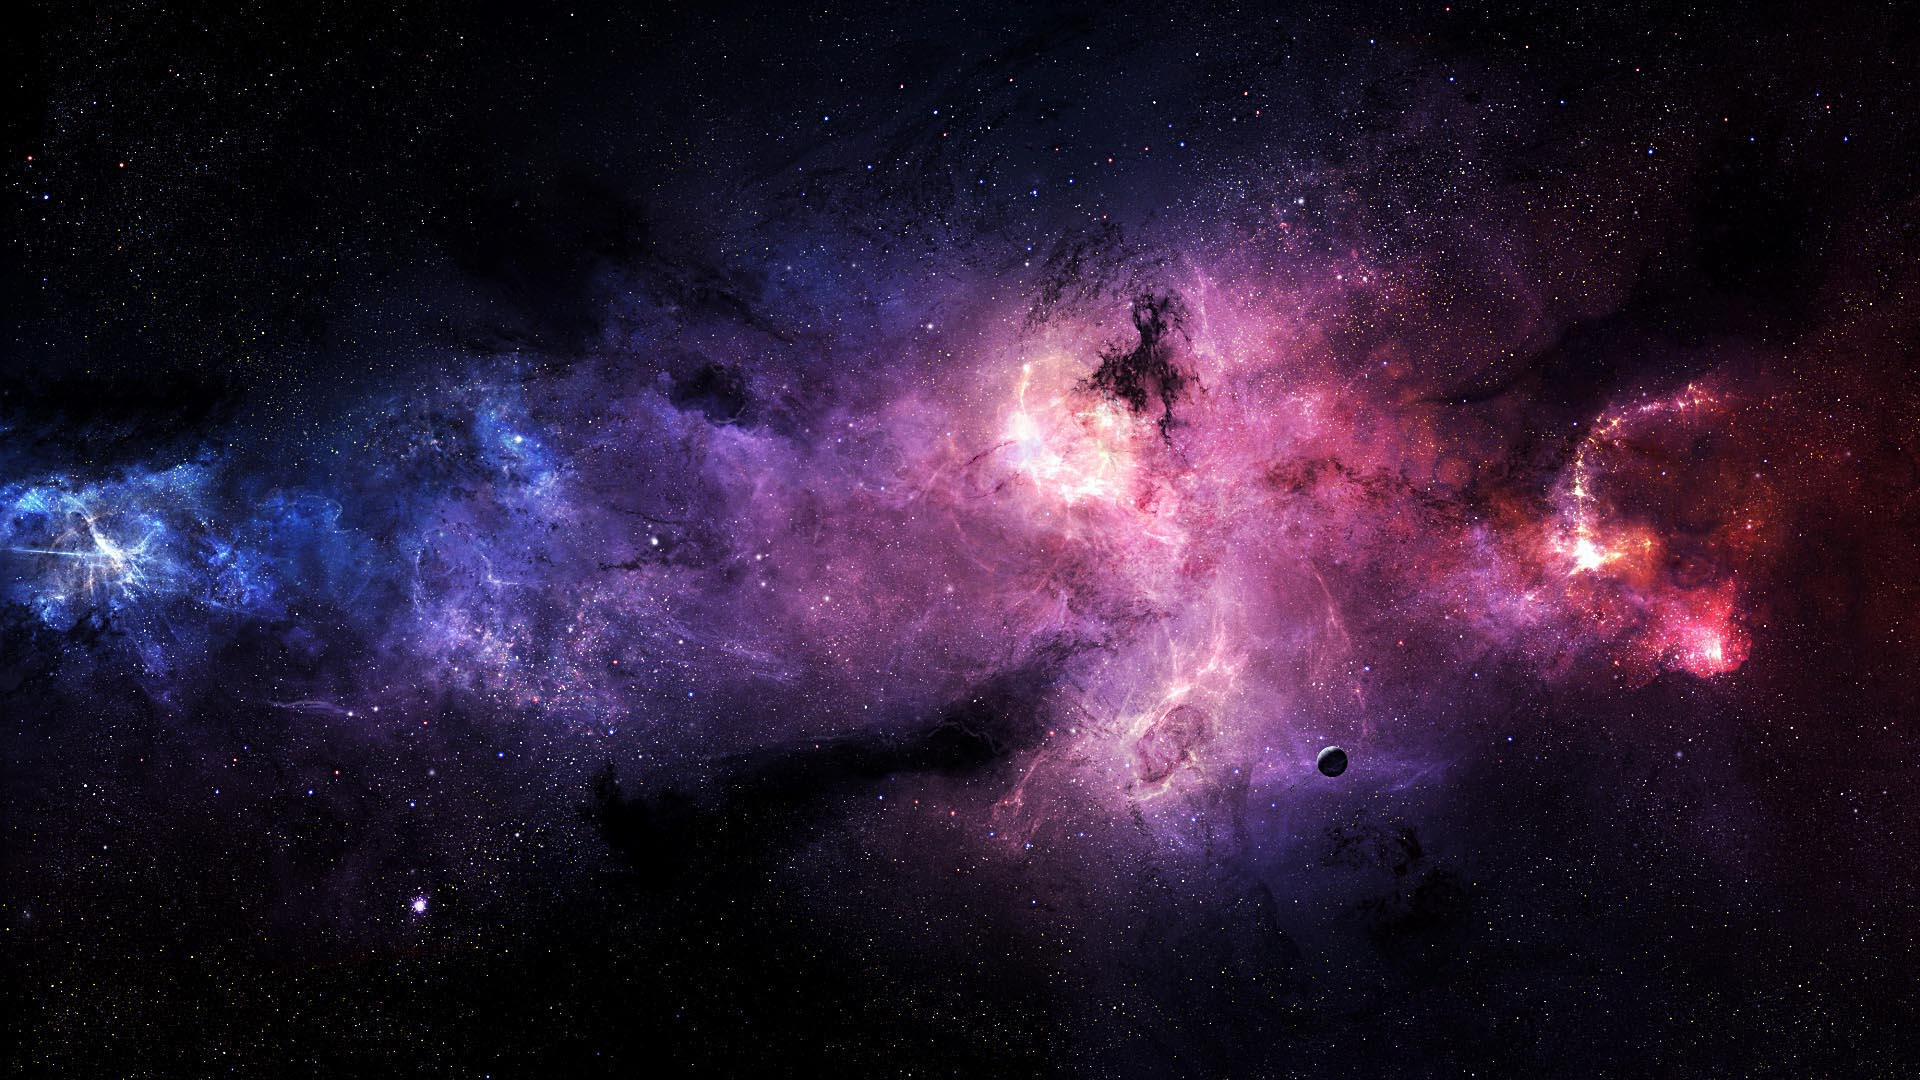 Galaxy wallpaper   820356 1920x1080